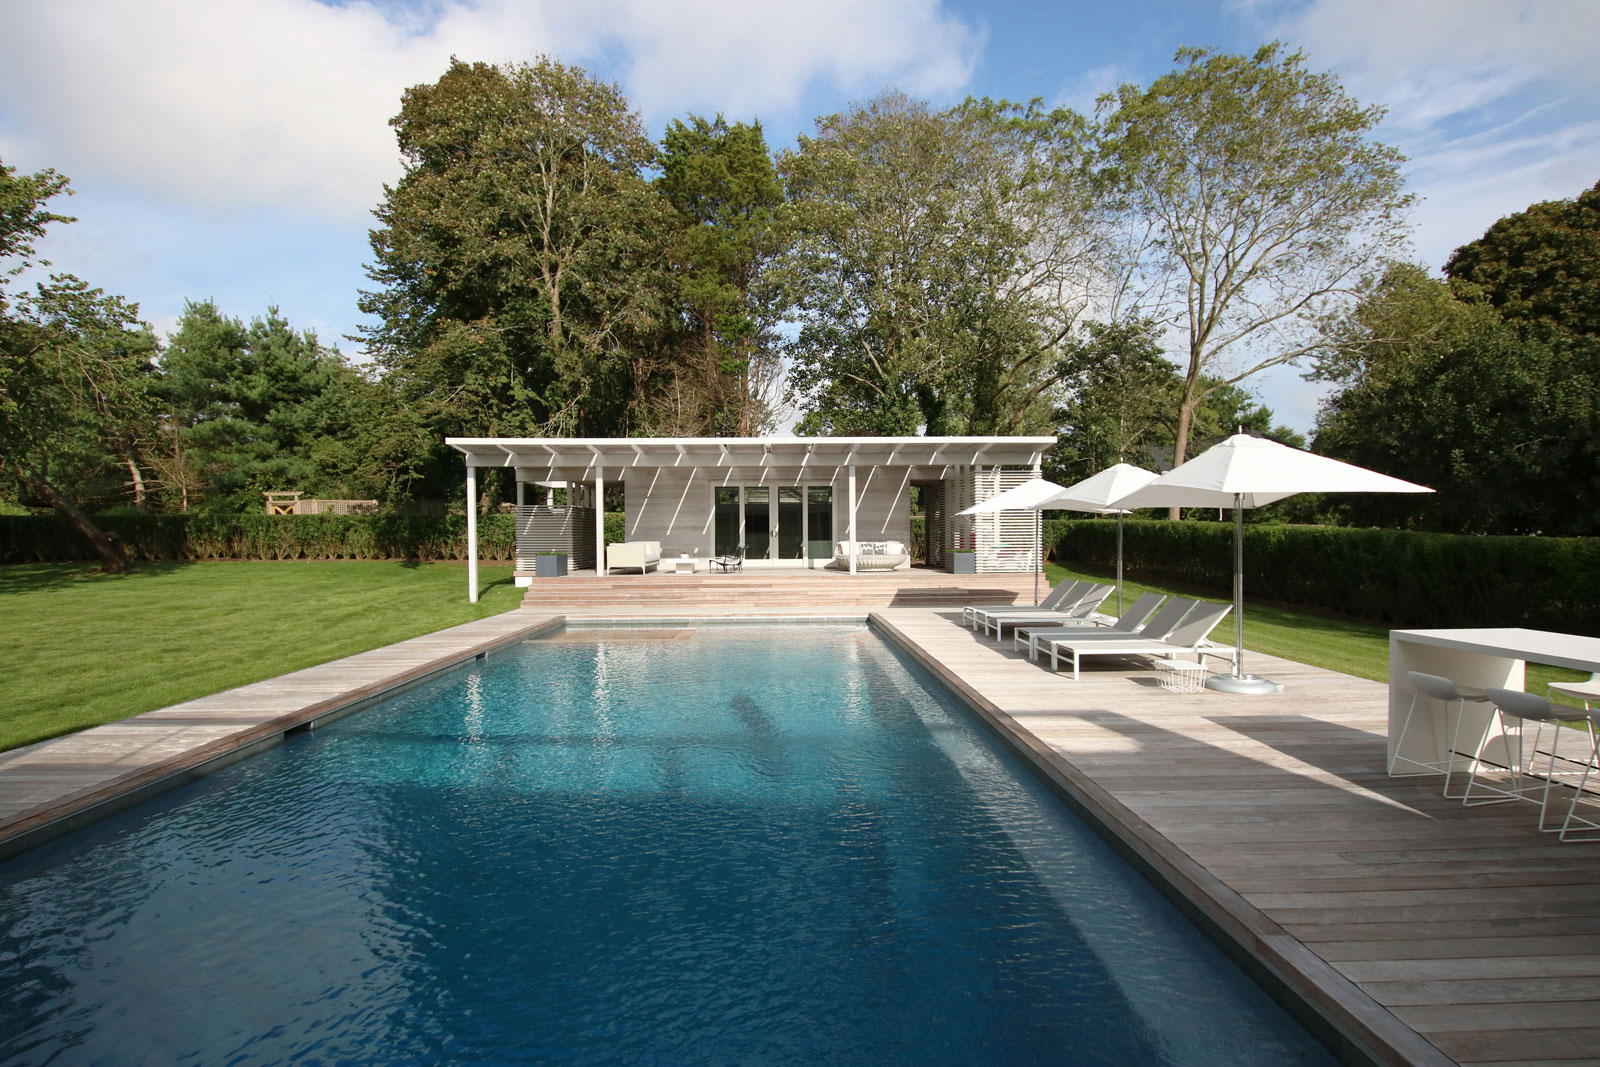 09_Bridgehampton House-pool-house.jpg